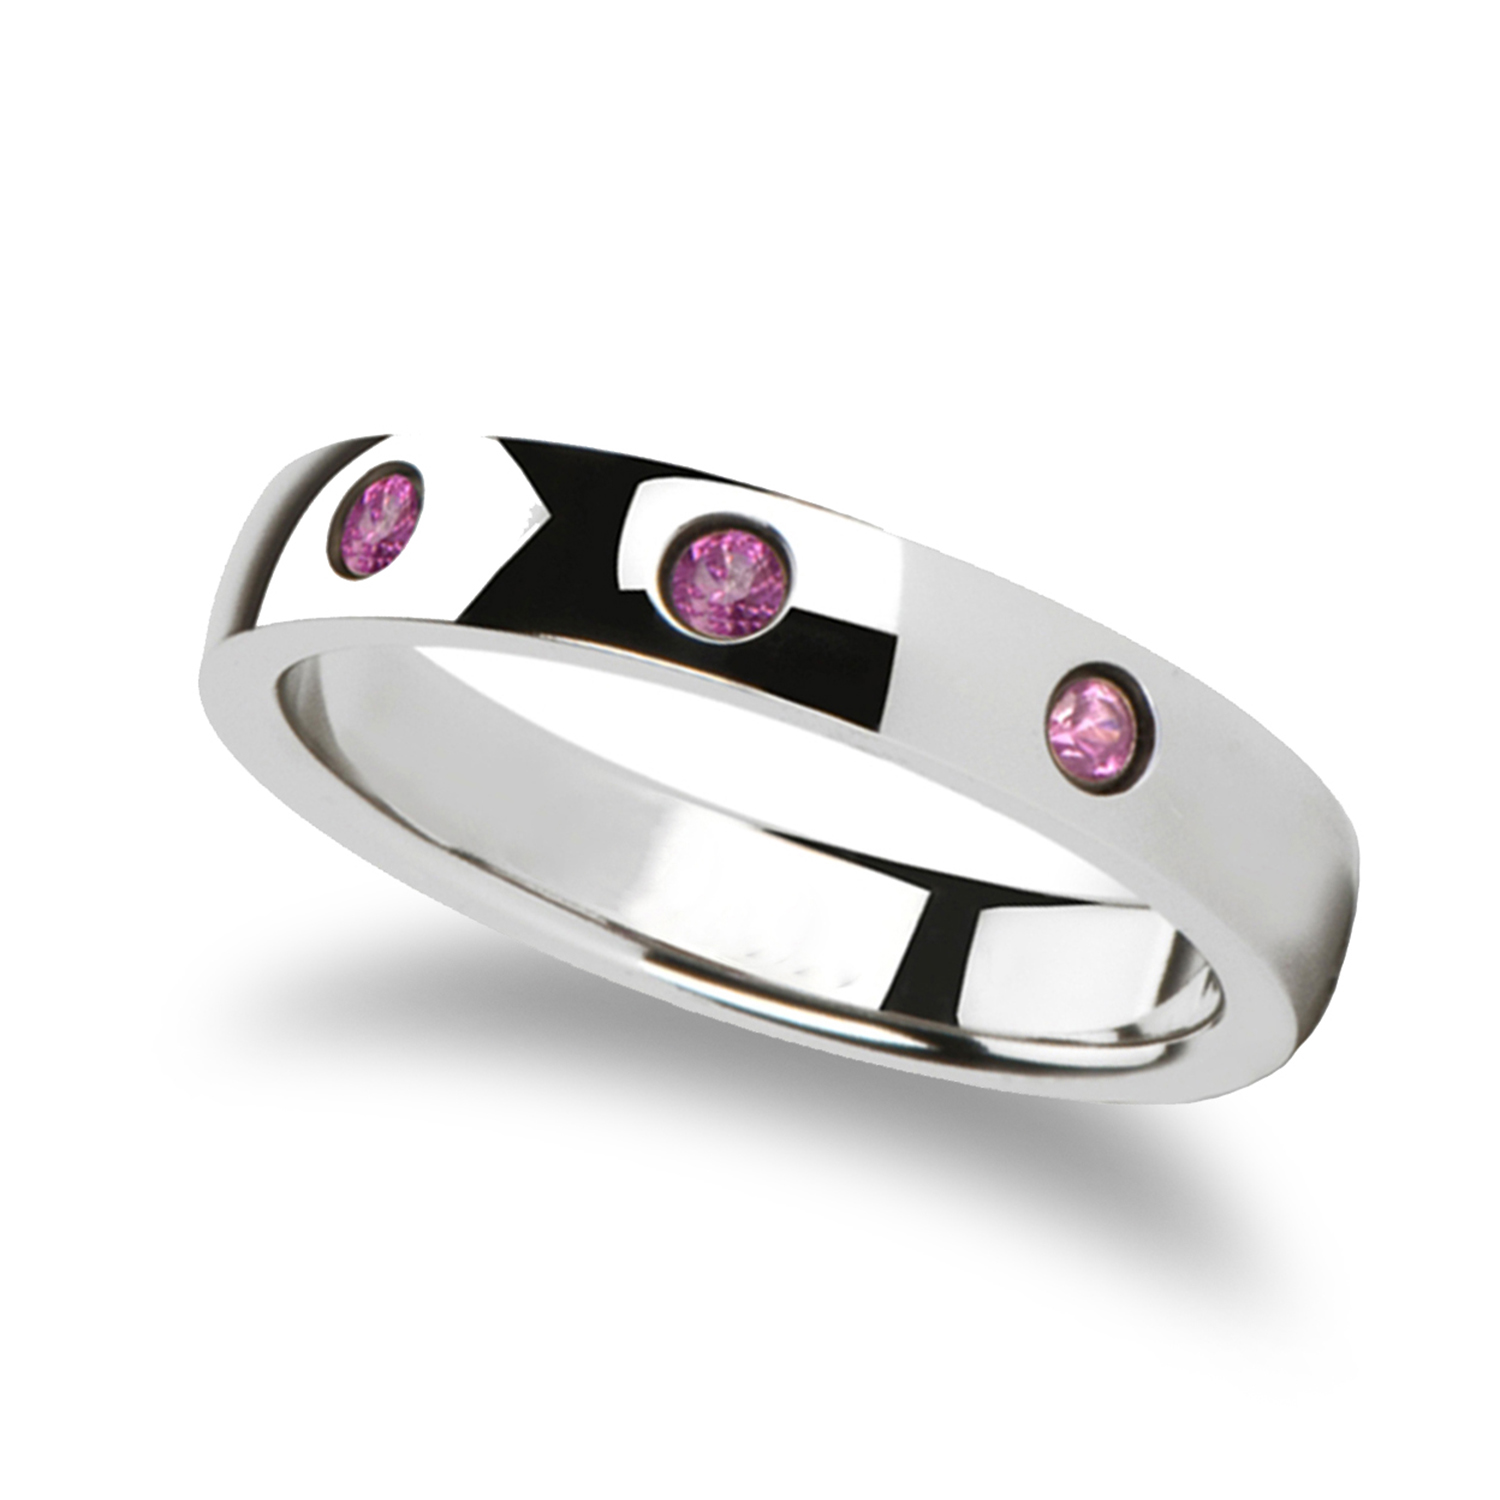 Rounded White Tungsten Wedding Band w/ 3 Pink Sapphires 0.10ct (4MM)